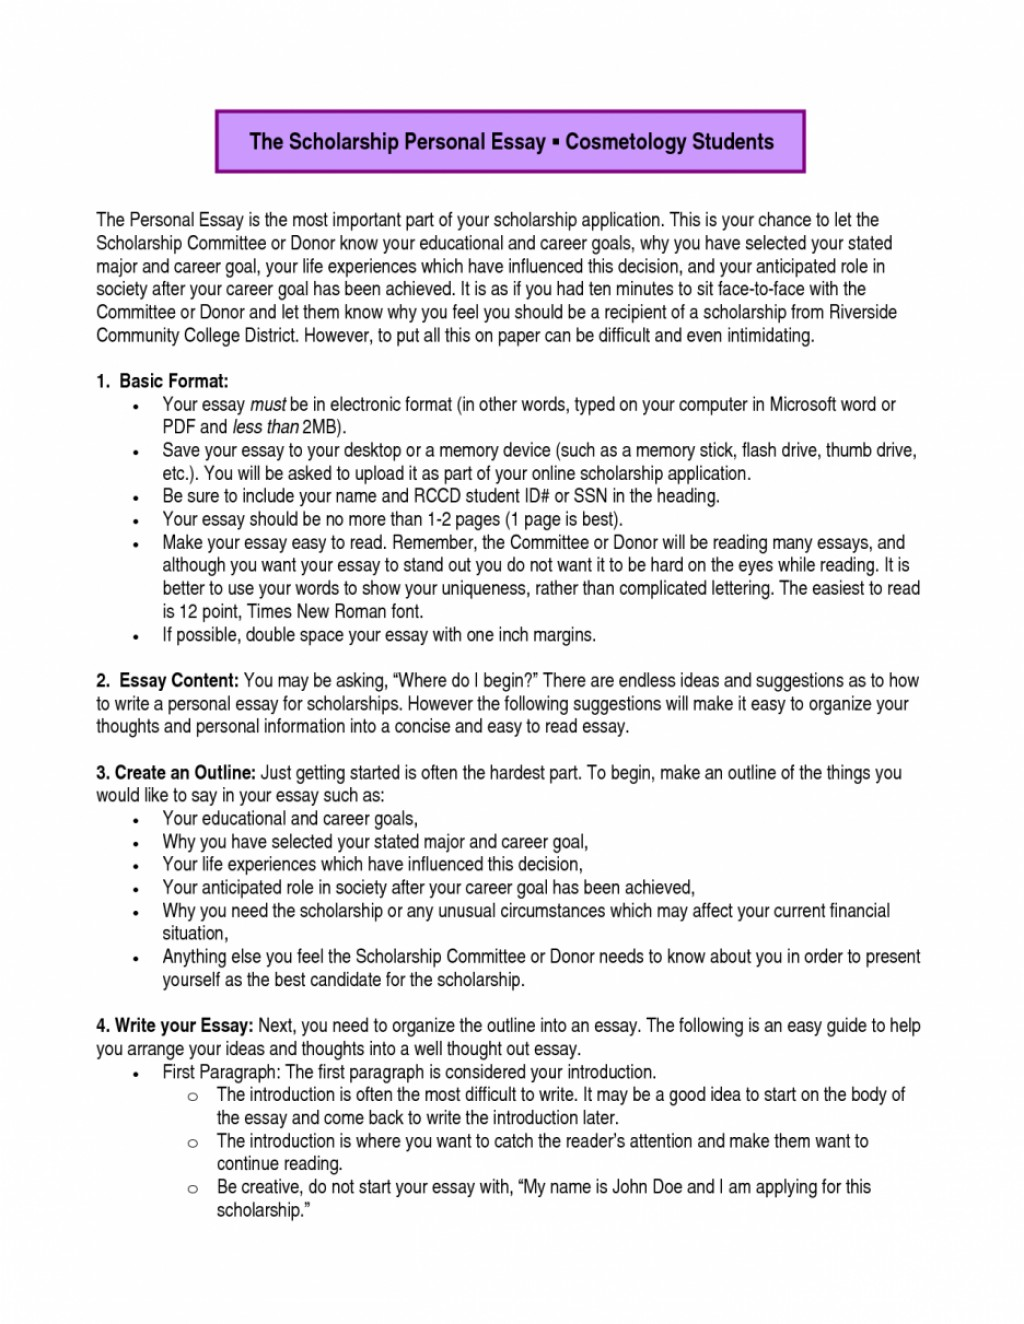 024 Personal Goals Essay Goal Essays Career And Educational Examples Academic Sample Paper Nursing Professional My Setting Smart Life Values About Future Achieving For College Amazing Graduate School Outline Large